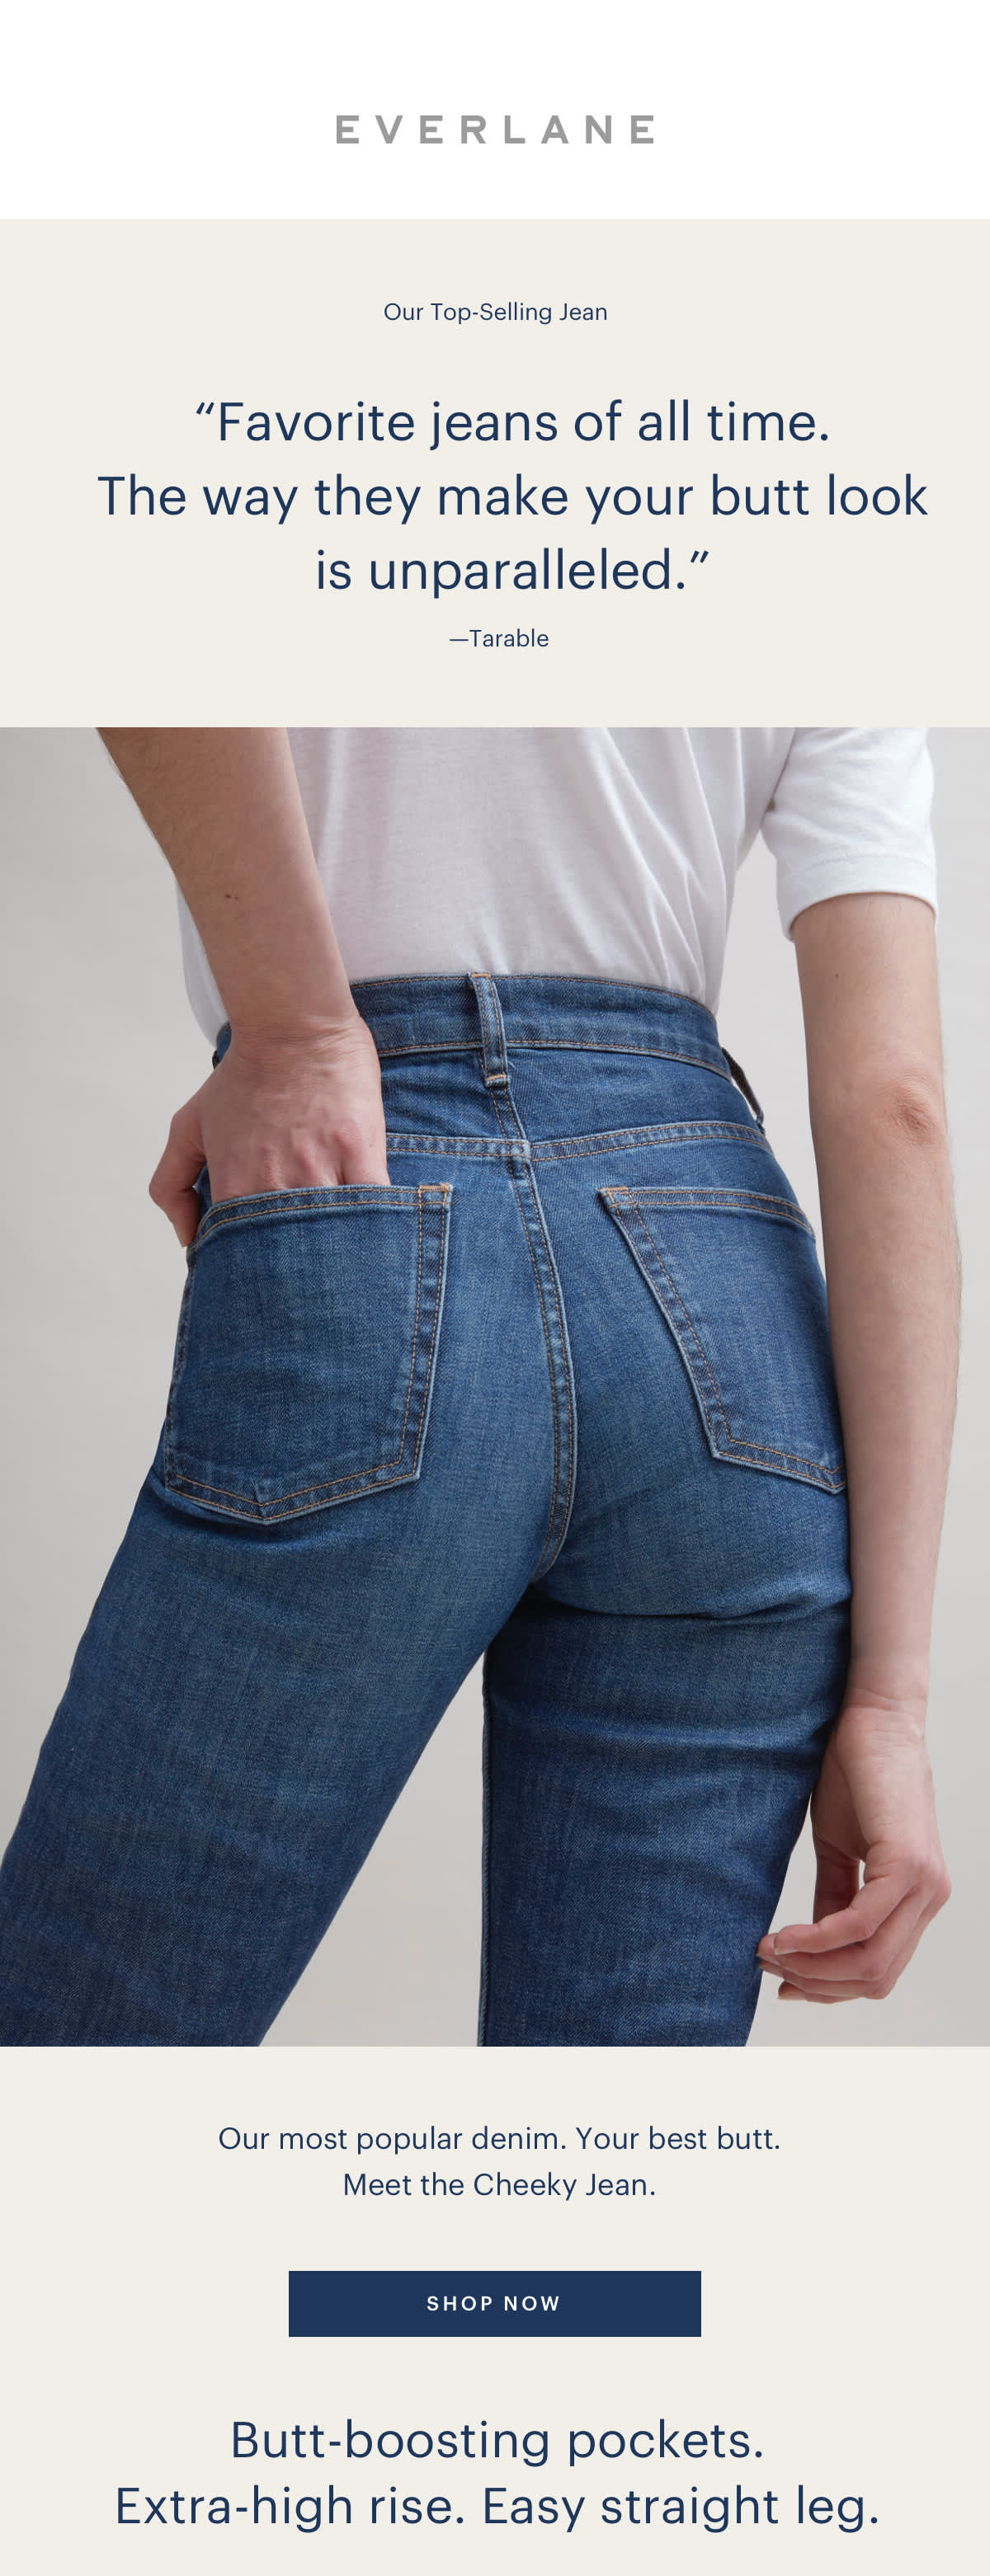 Our most popular denim. Your best butt. Meet the Cheeky Jean.